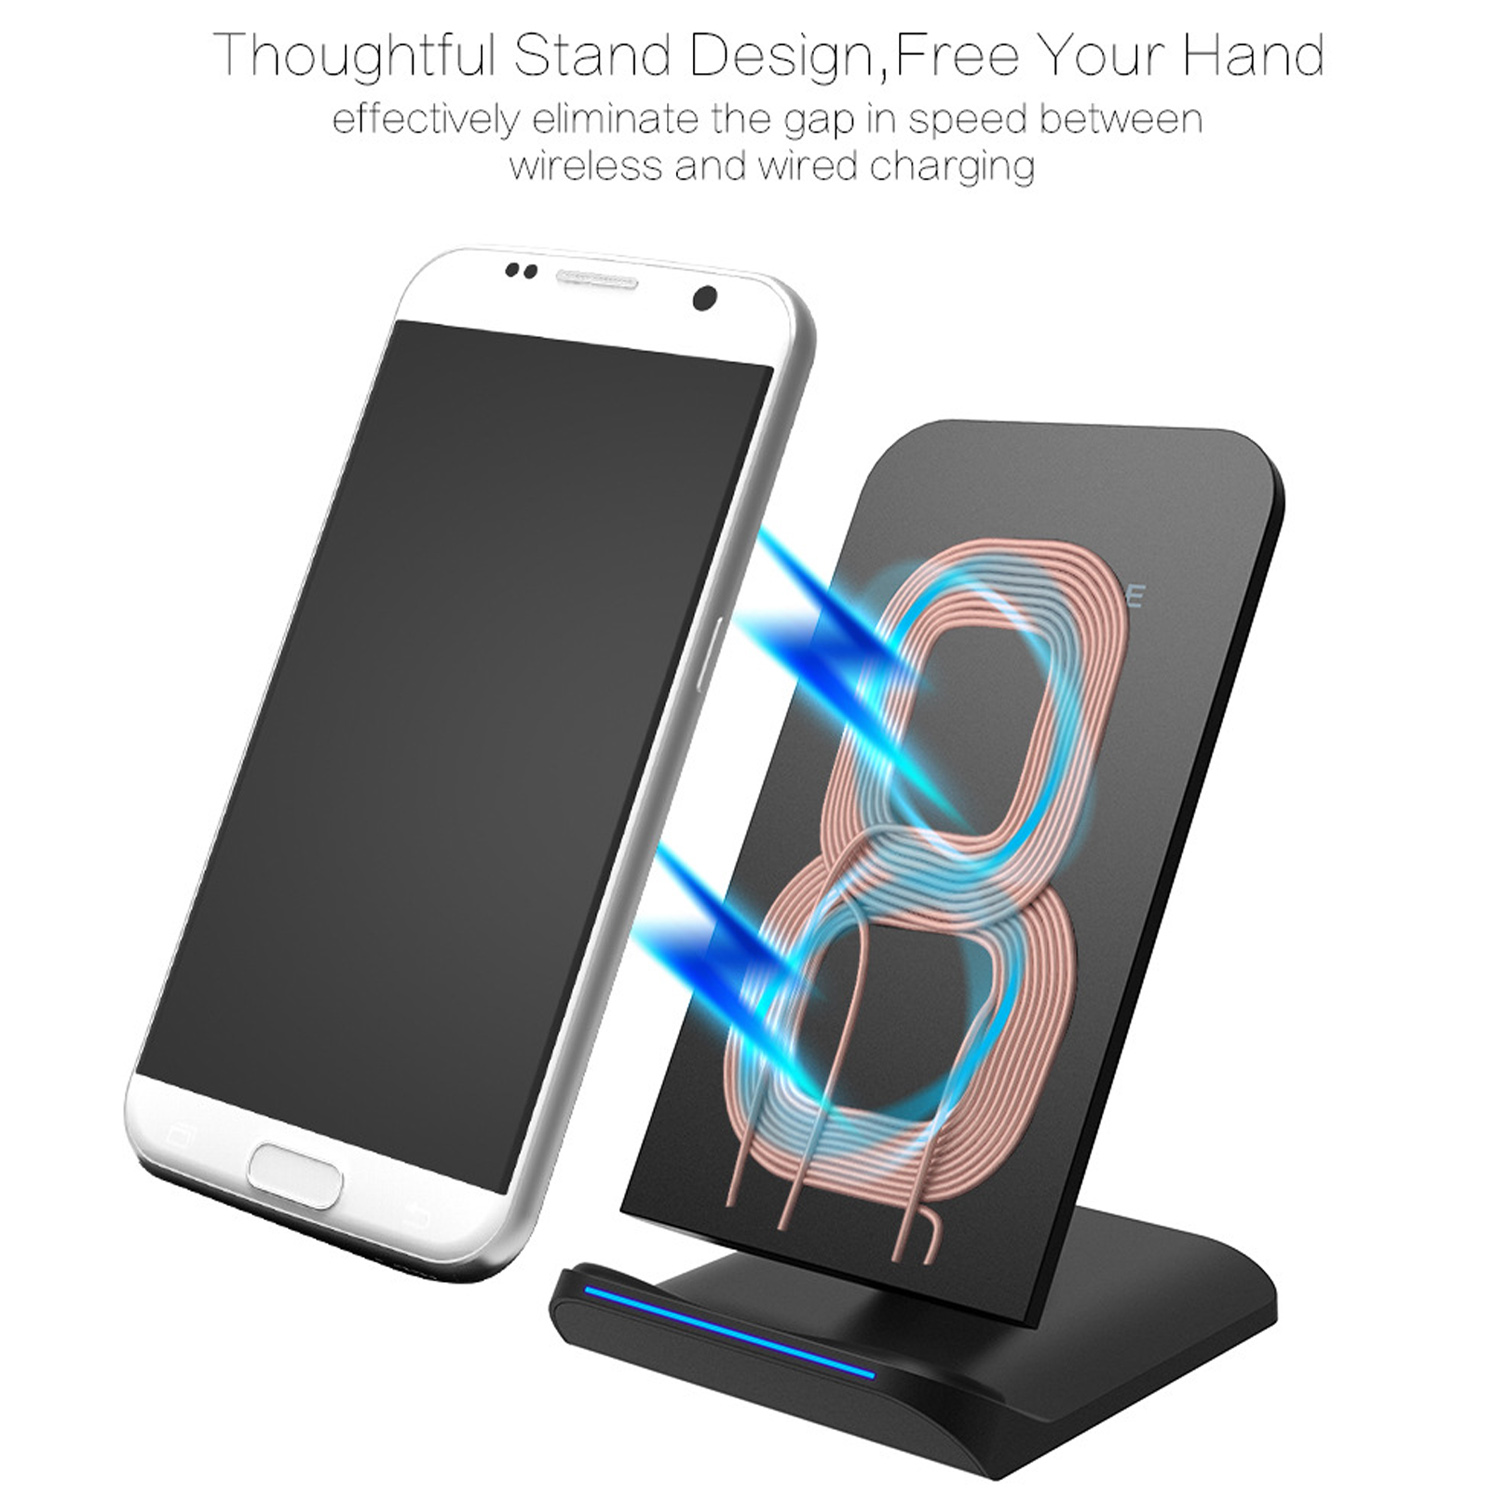 Fast Wireless Charger Cell Qi Charging Pad Stand For Samsung Original S8 Plus Galaxy Note 8